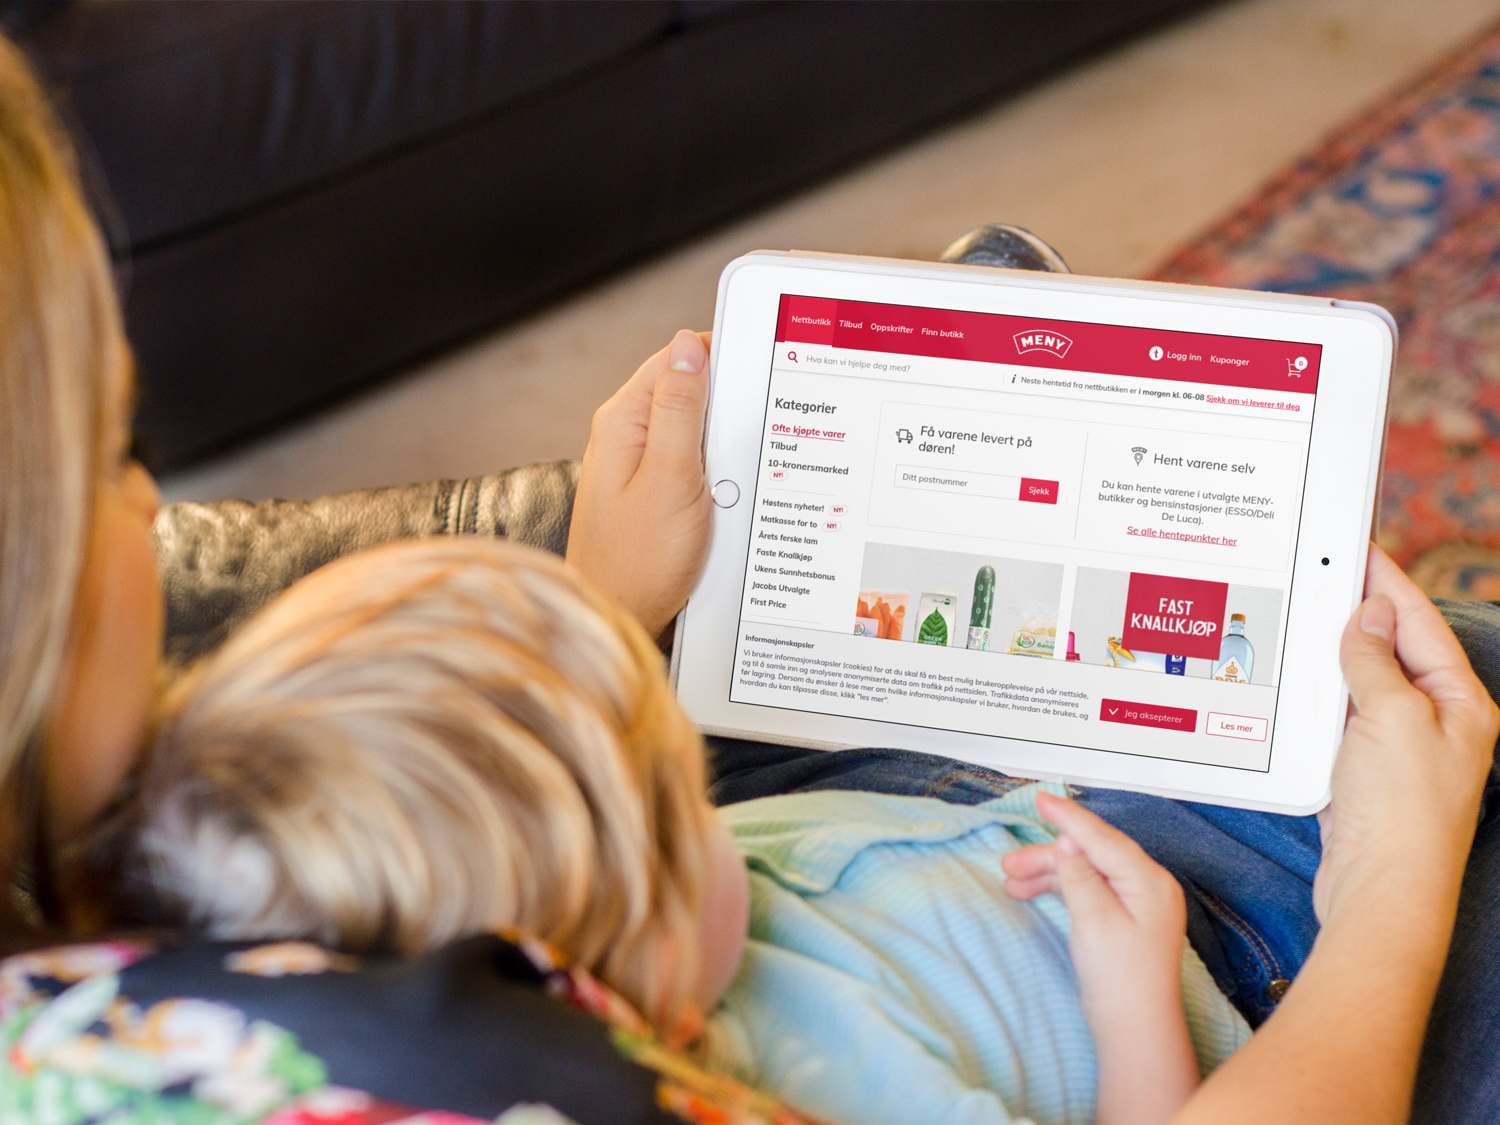 A woman sitting with her child, shopping at the Meny Netthandel website.